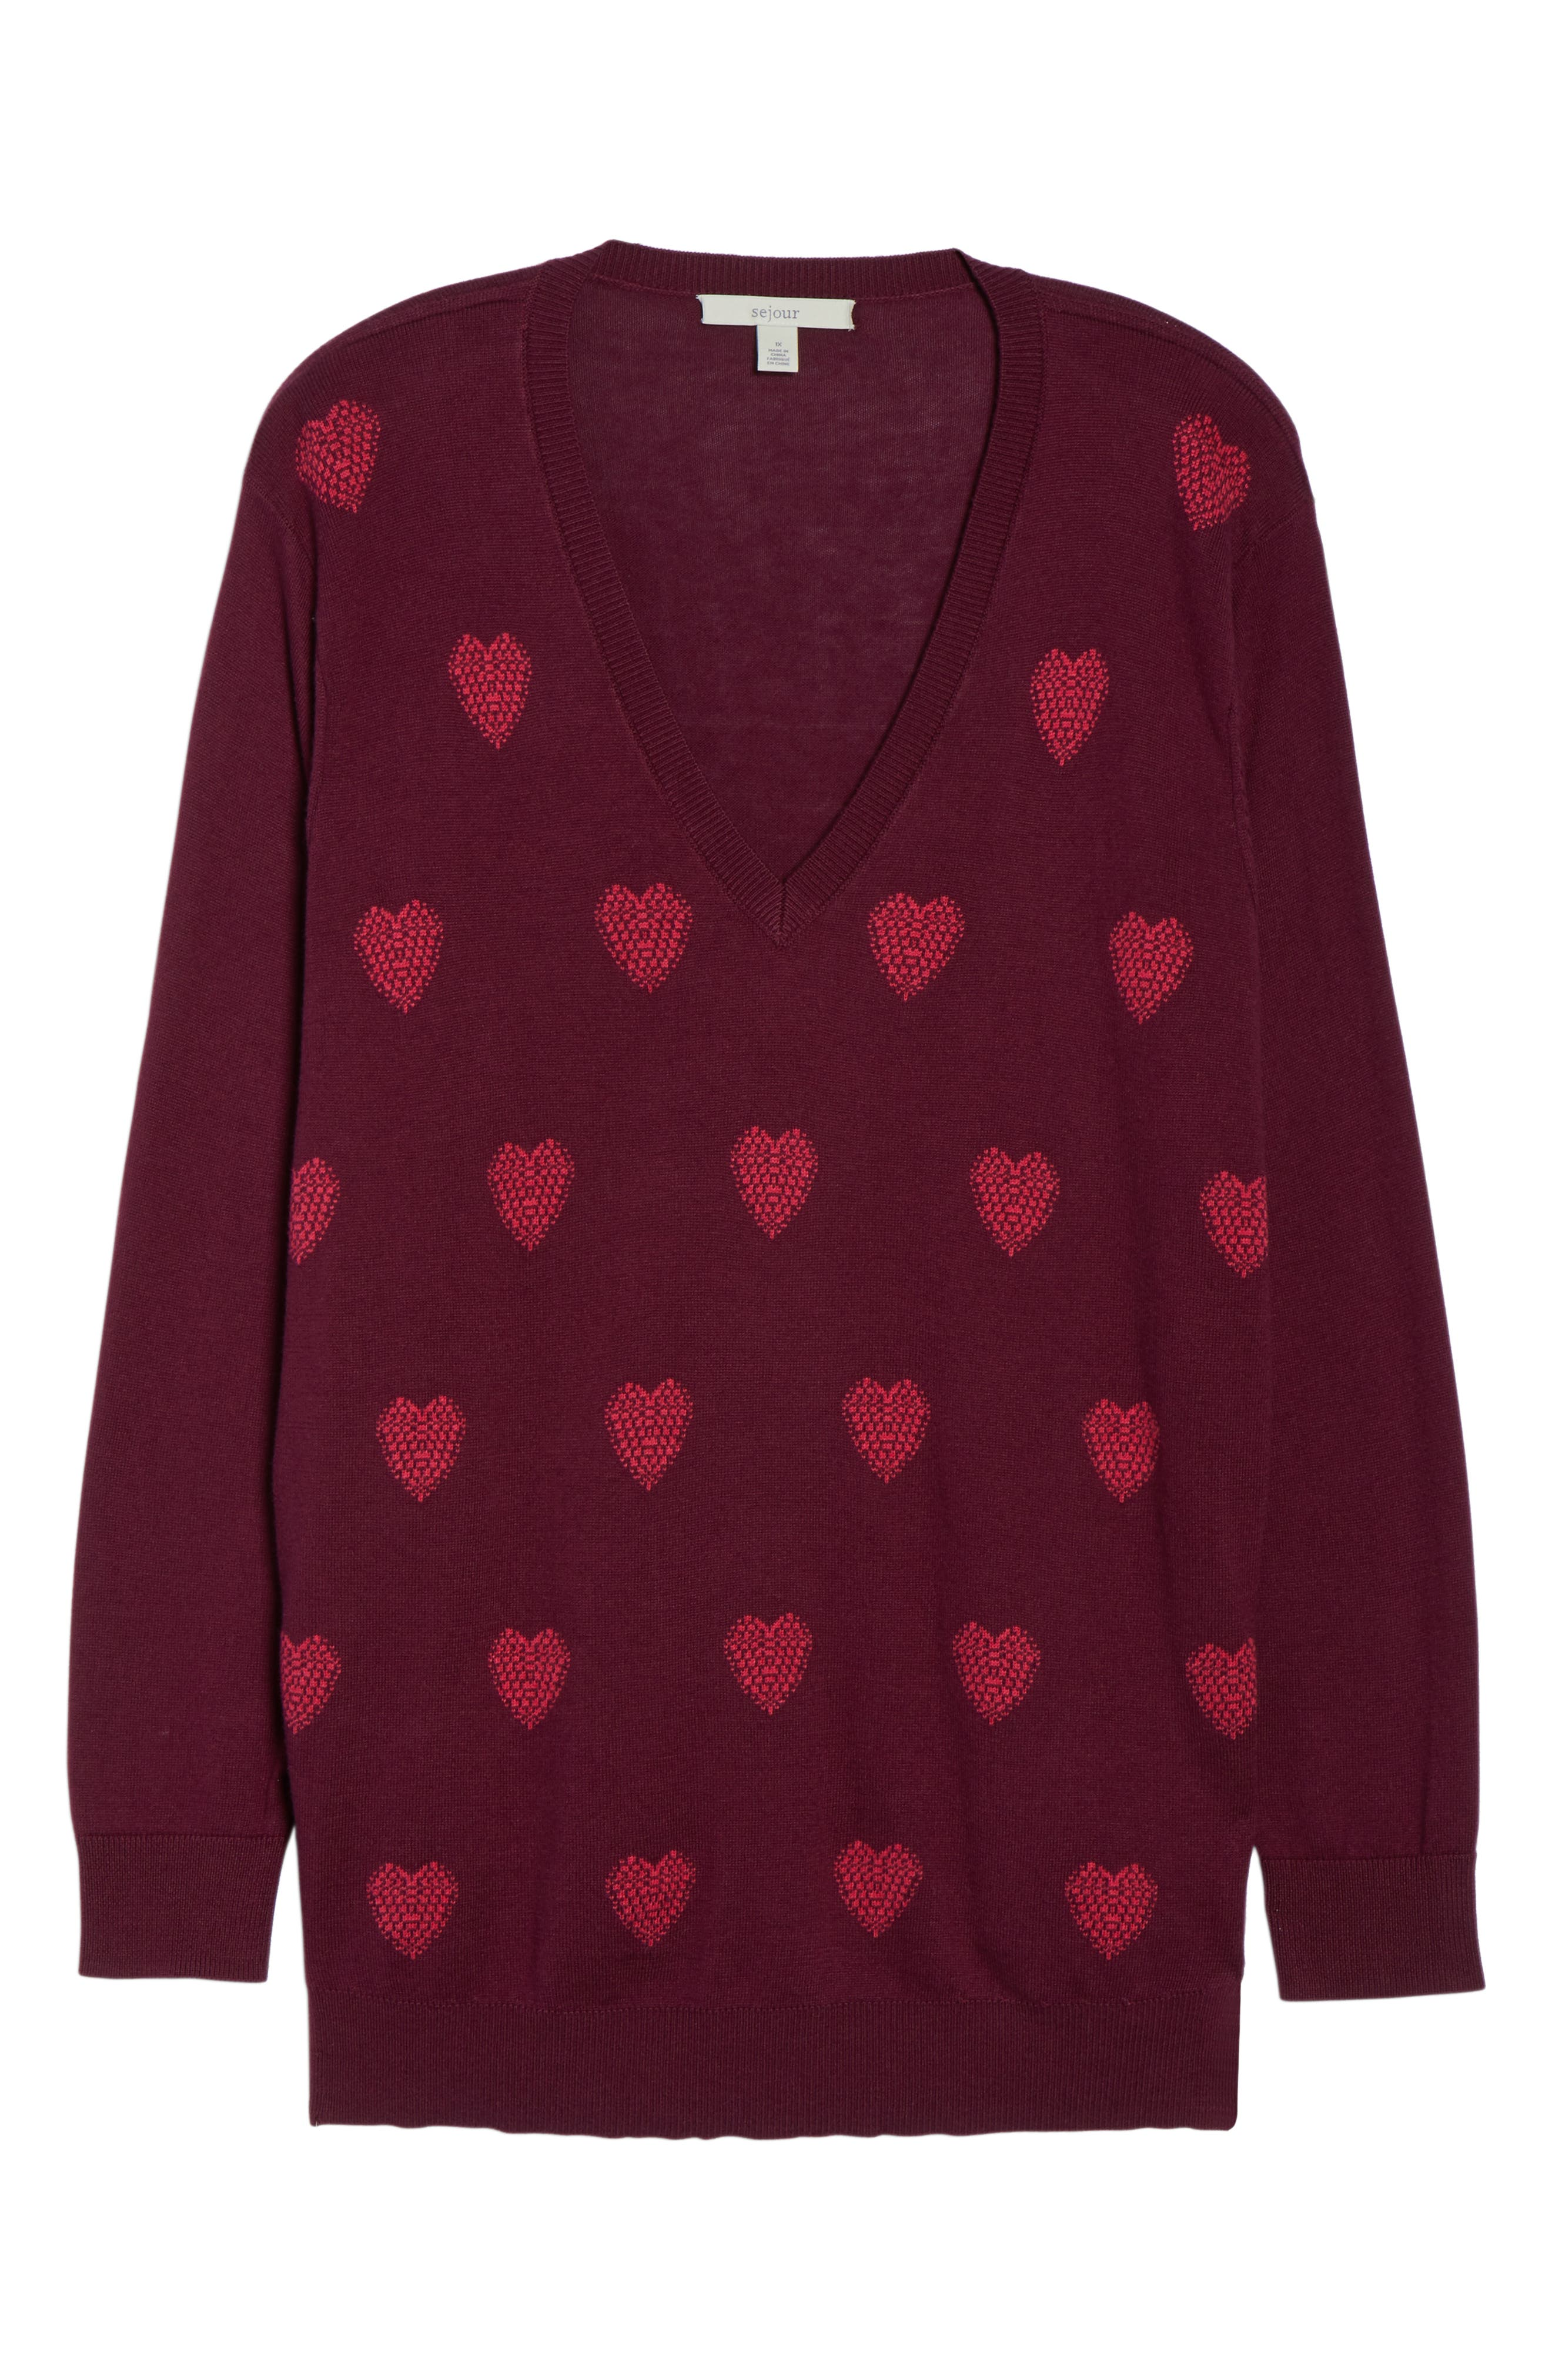 Heart Pattern Cotton Blend Sweater,                             Alternate thumbnail 6, color,                             BURGUNDY- PINK HEART KNIT